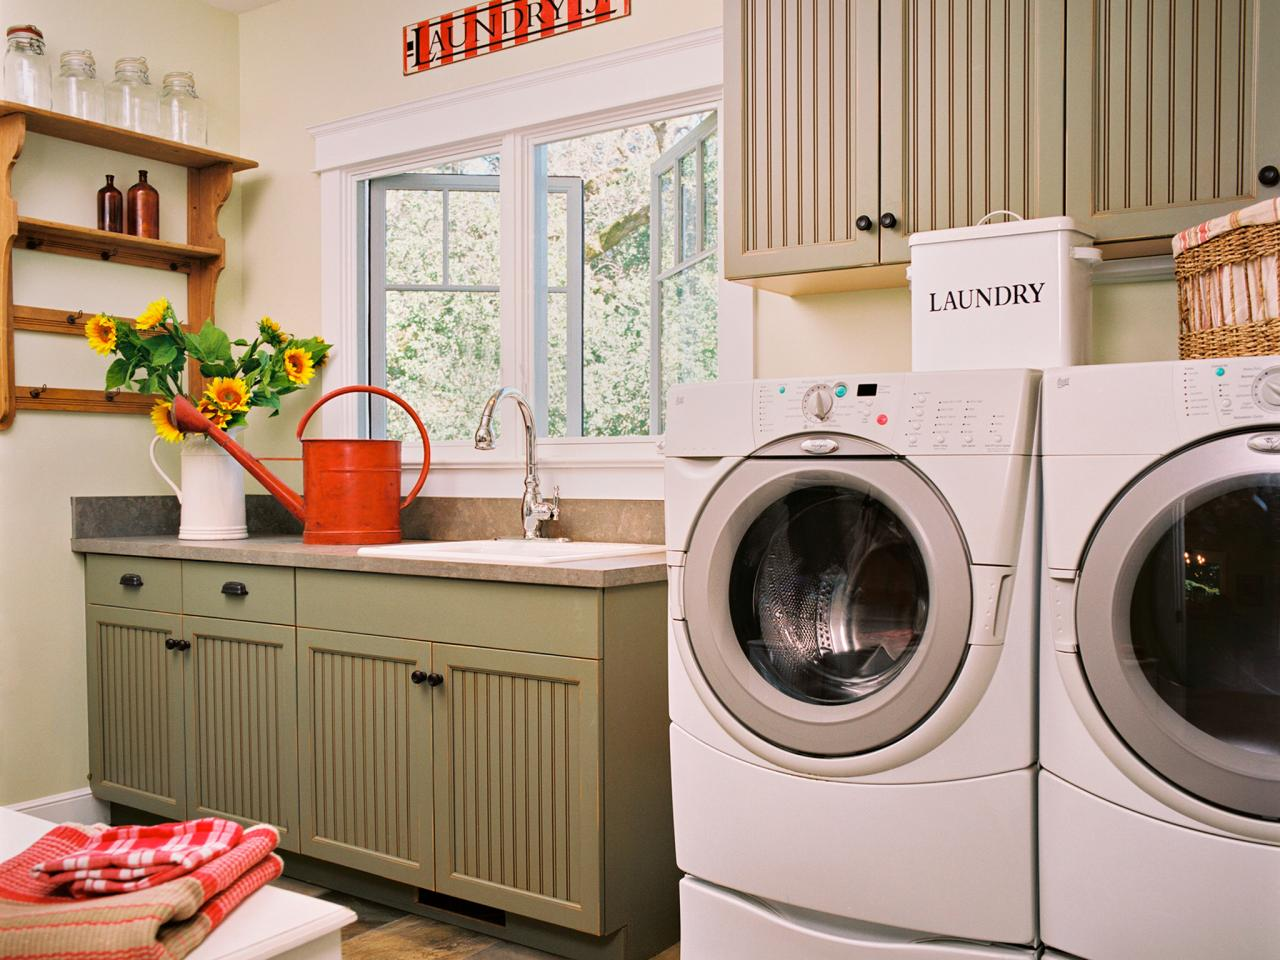 Laundry room makeover ideas pictures options tips advice hgtv - Making most of small spaces property ...